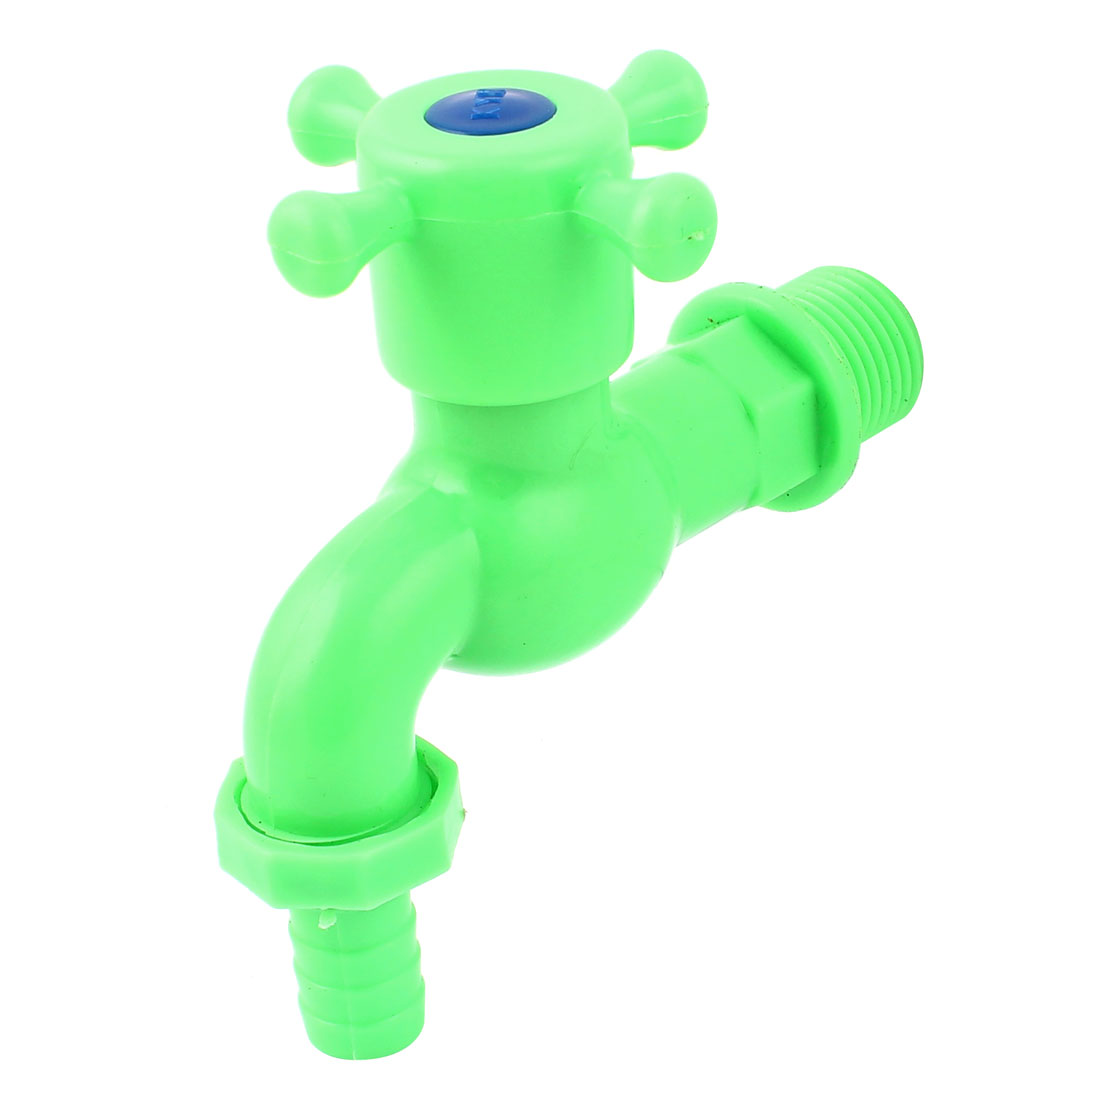 Plastic Water Pipe Hole Stop Tap Valve Dispenser Faucet Green